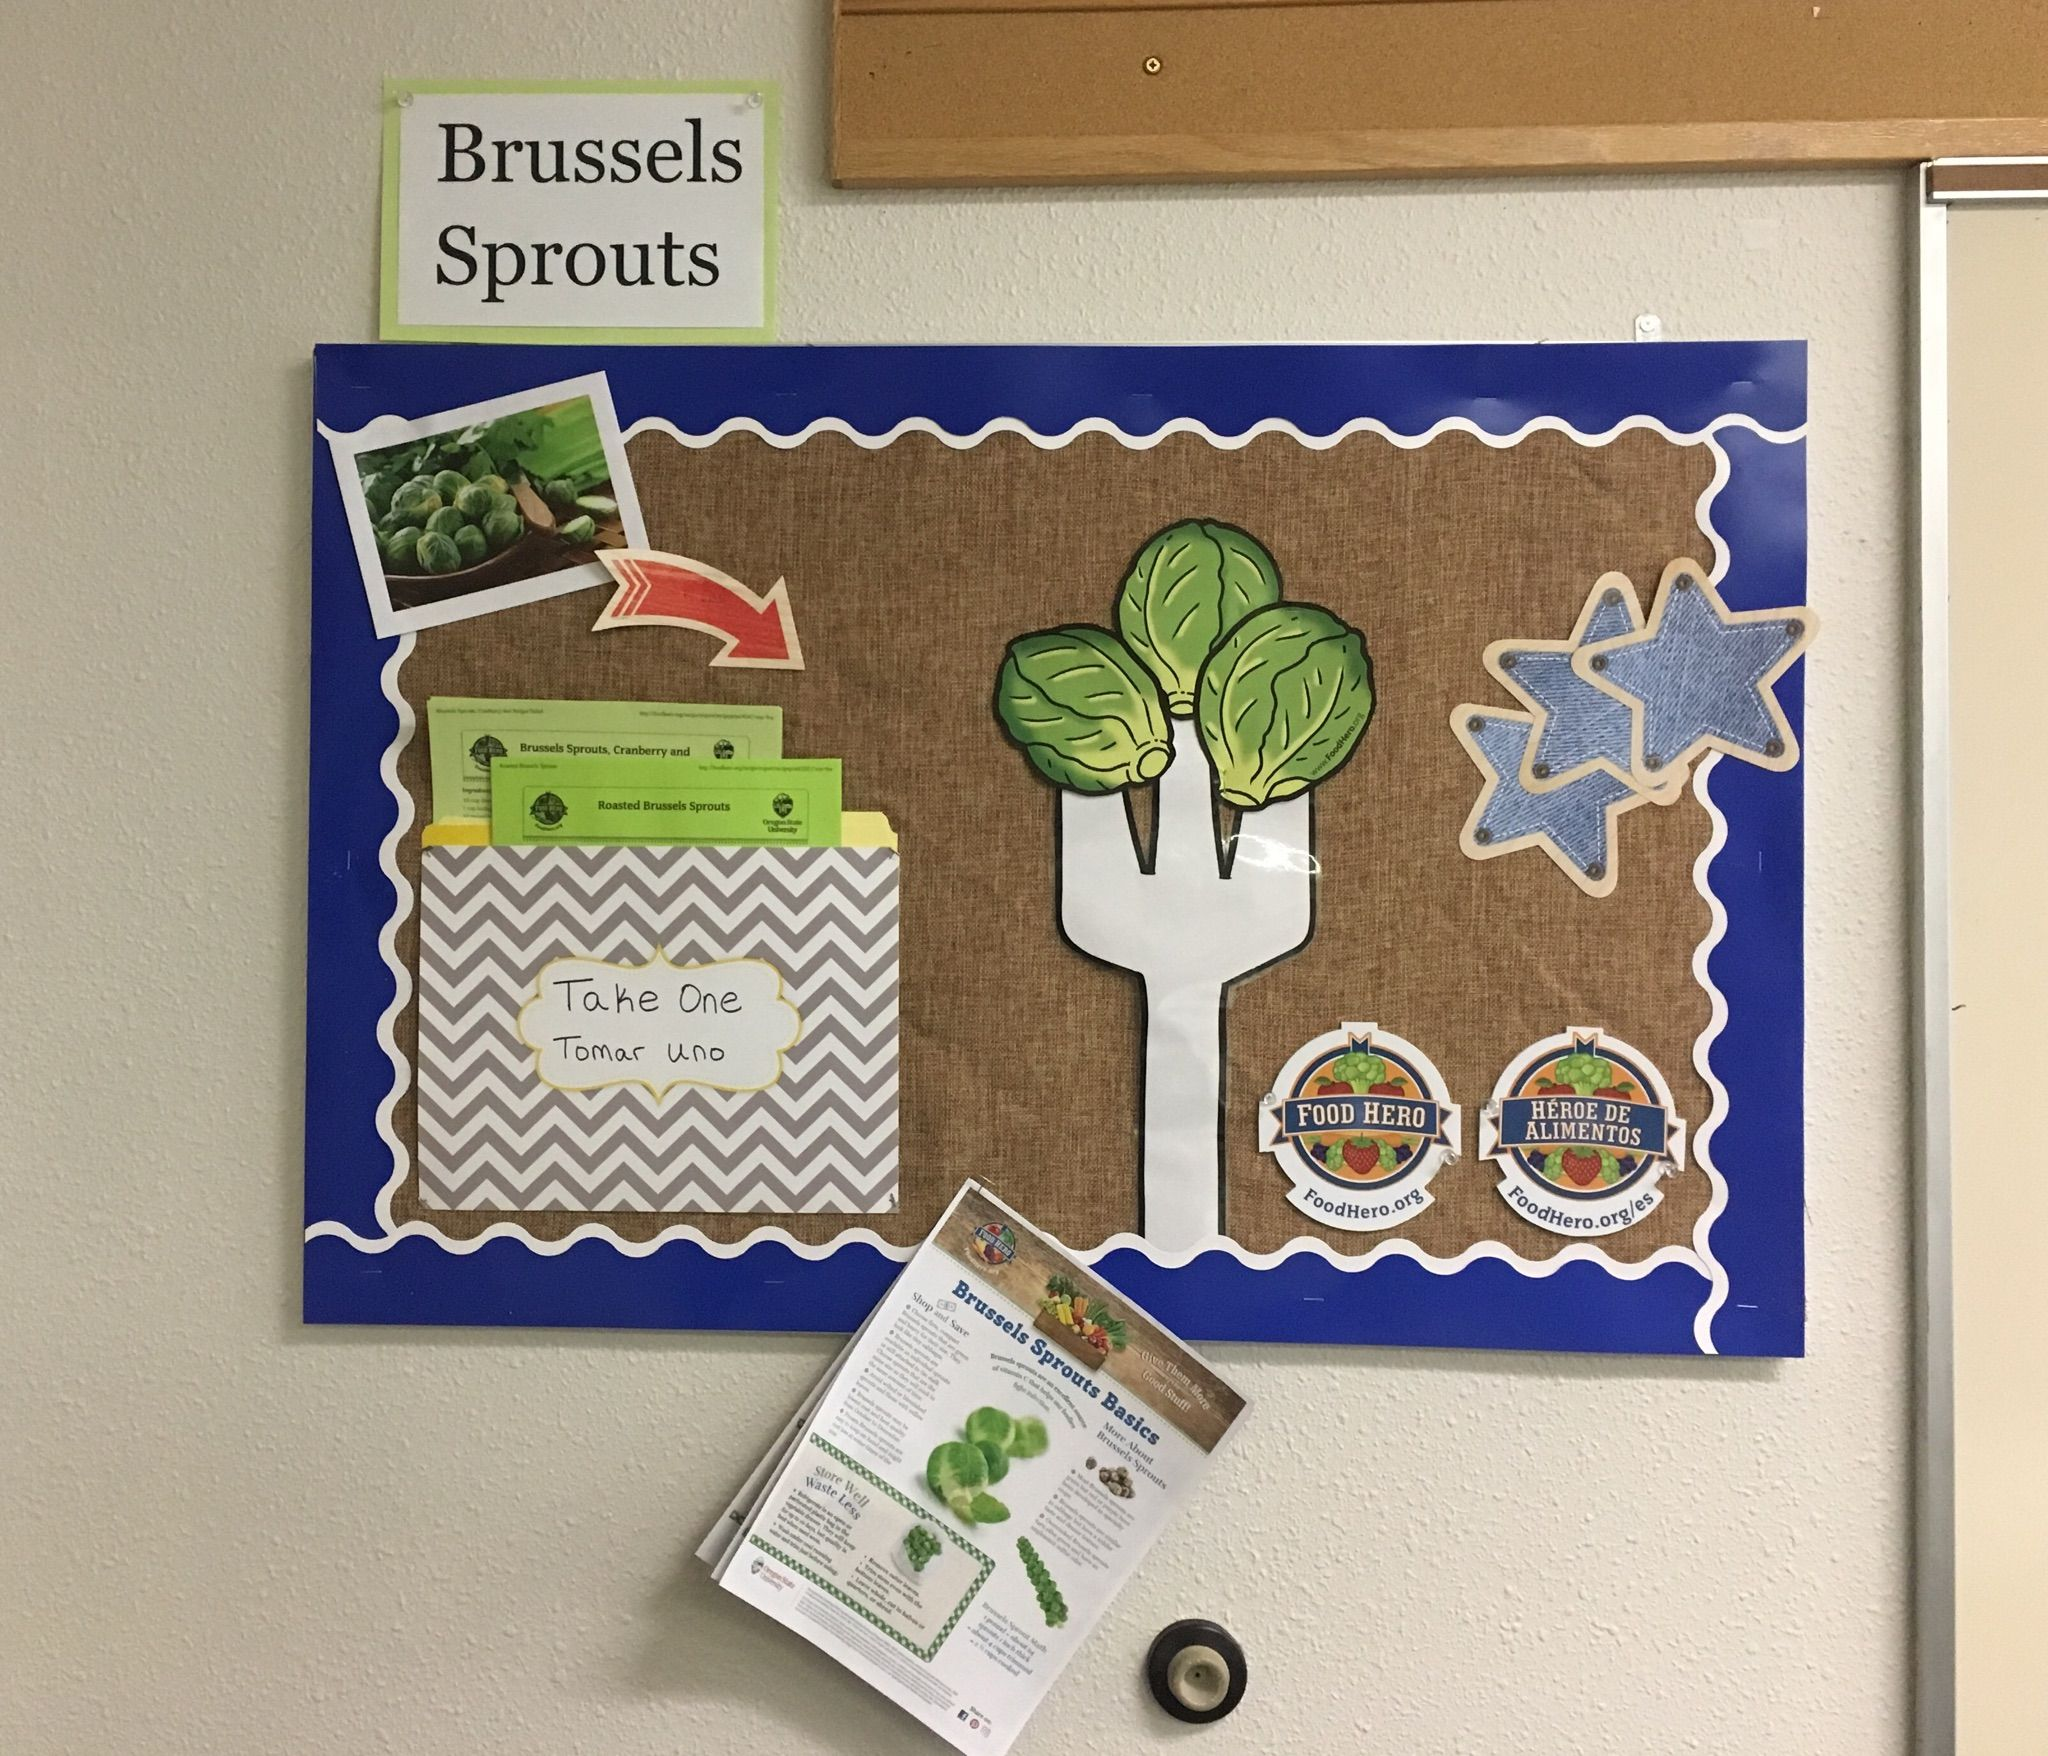 Small Bulletin Board With Brussels Sprouts Brusselssprouts